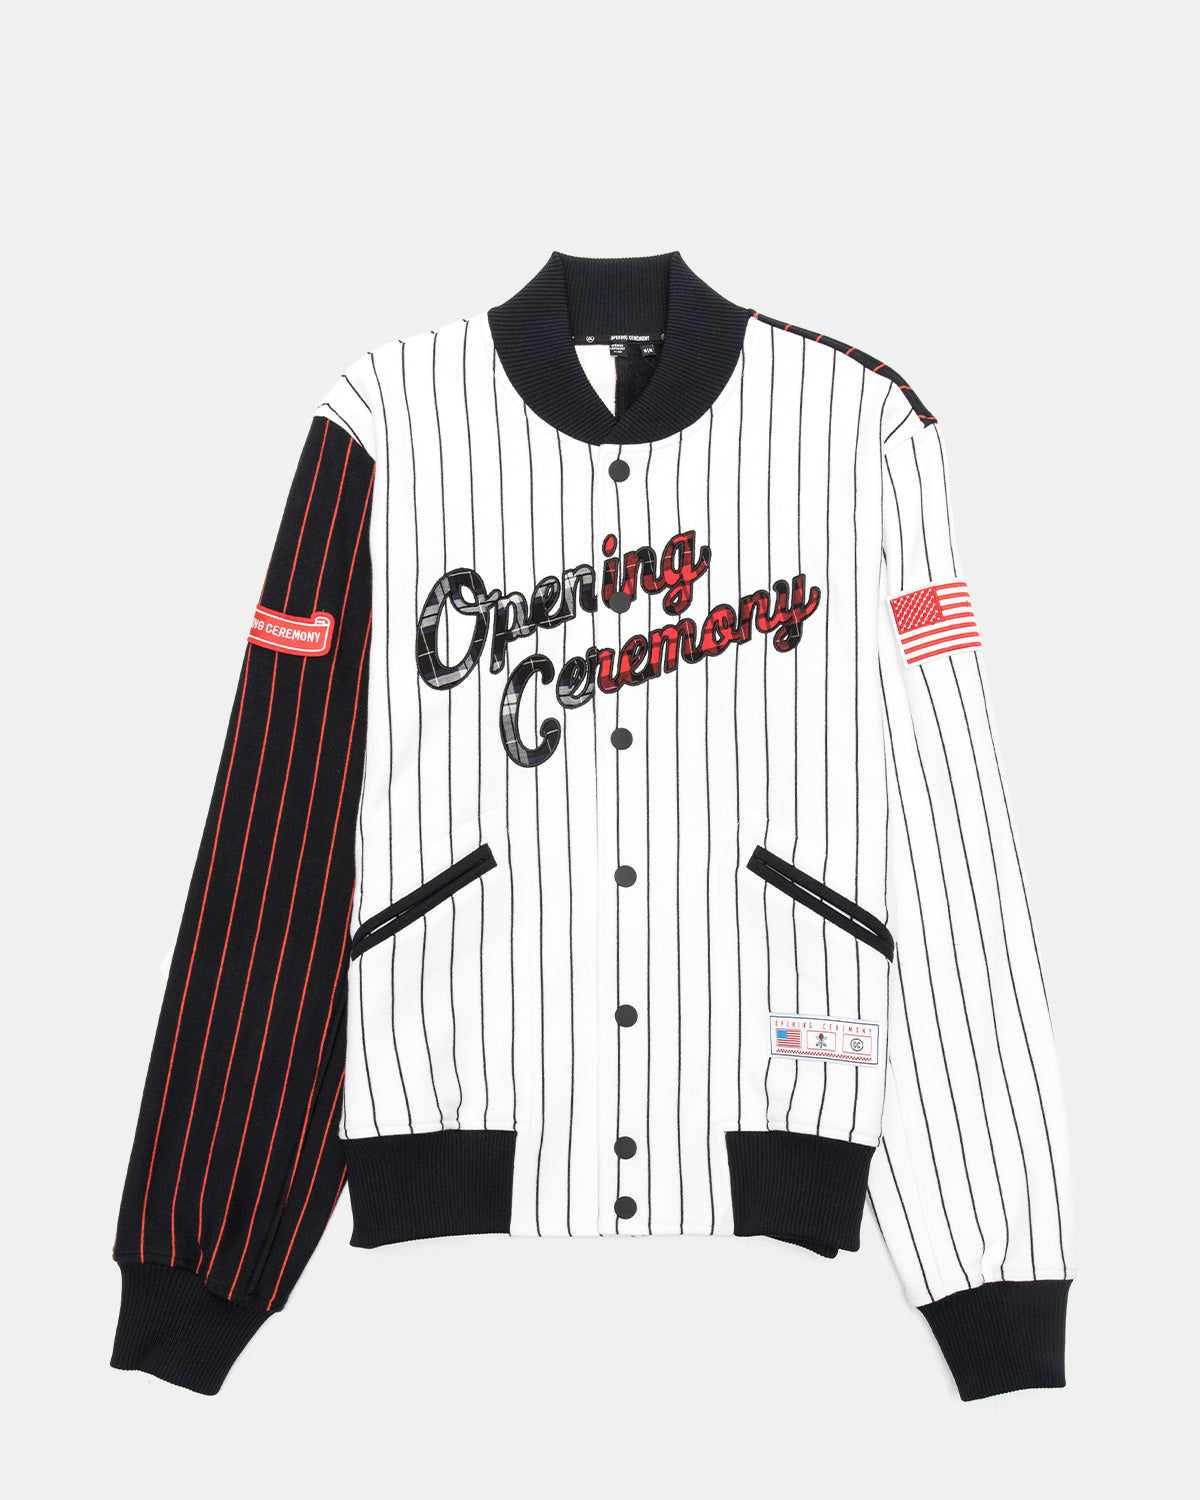 Opening Ceremony - Women's OC Pinstripe Varsity Jacket (Black)